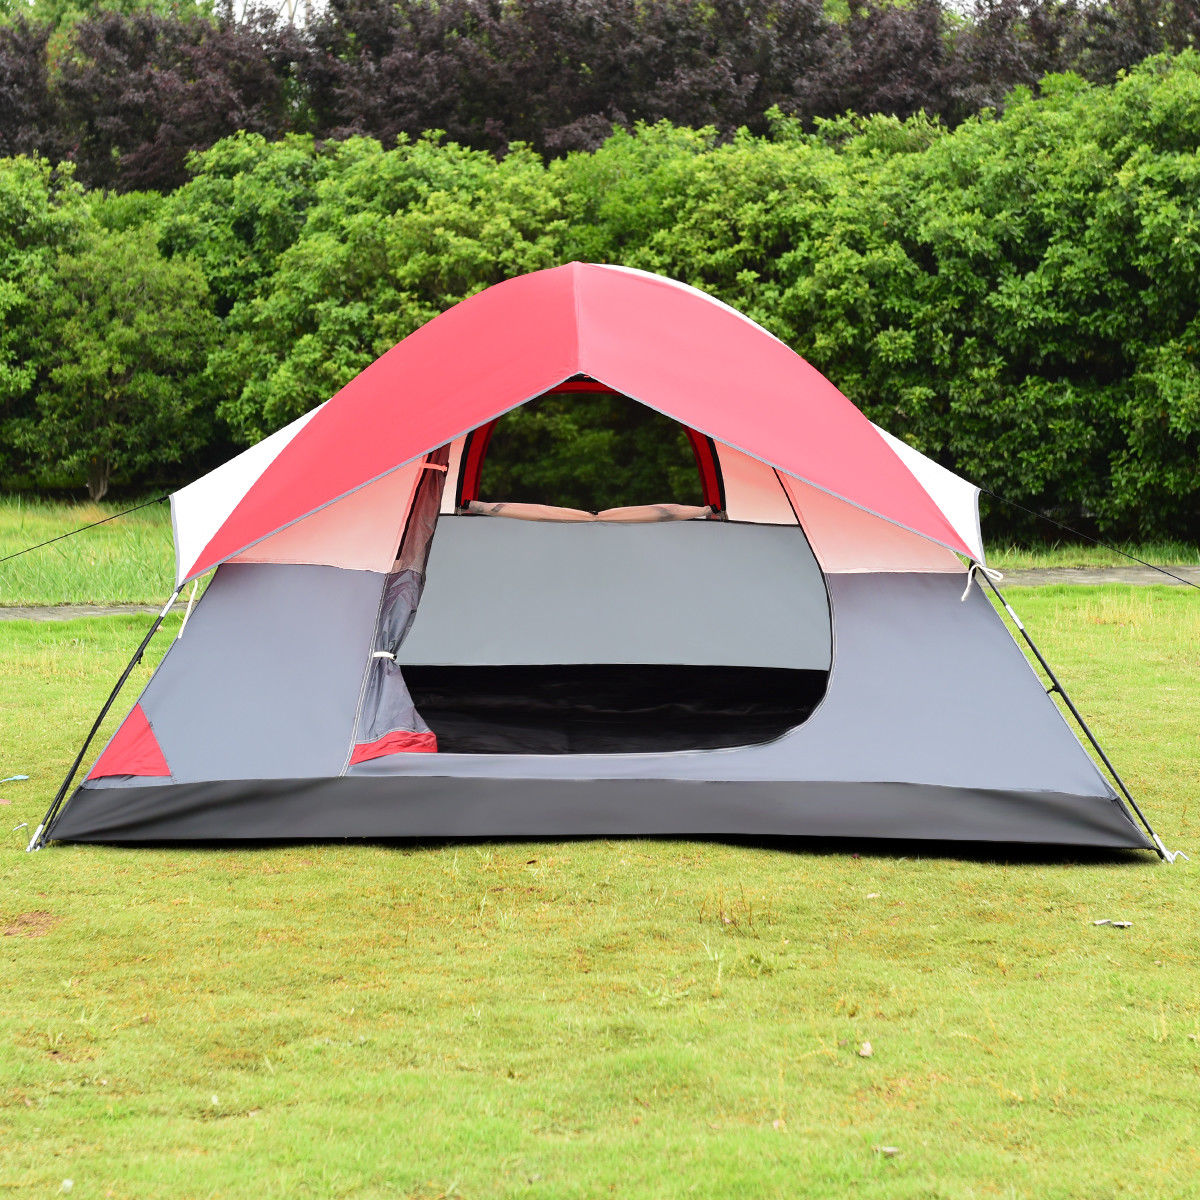 Gymax Portable 4 Person Family Tent Easy Set-up Outdoor Camping Hiking Rainproof w/Bag